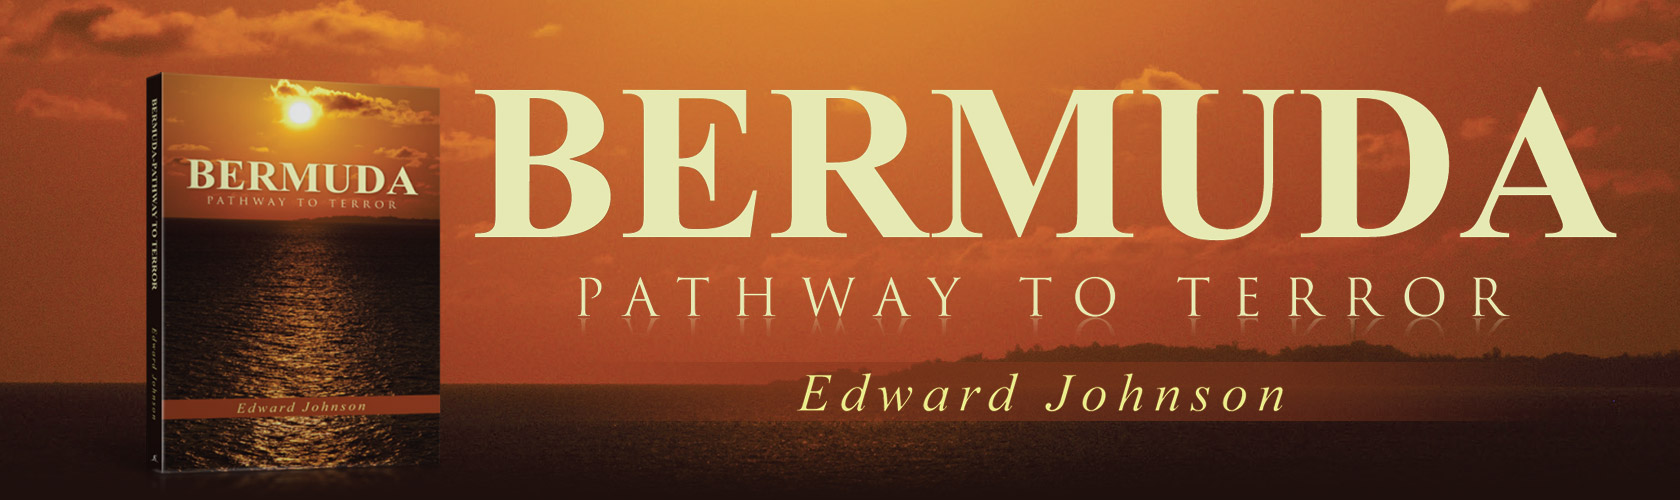 Bermuda-Pathway to Terror by Edward Johnson